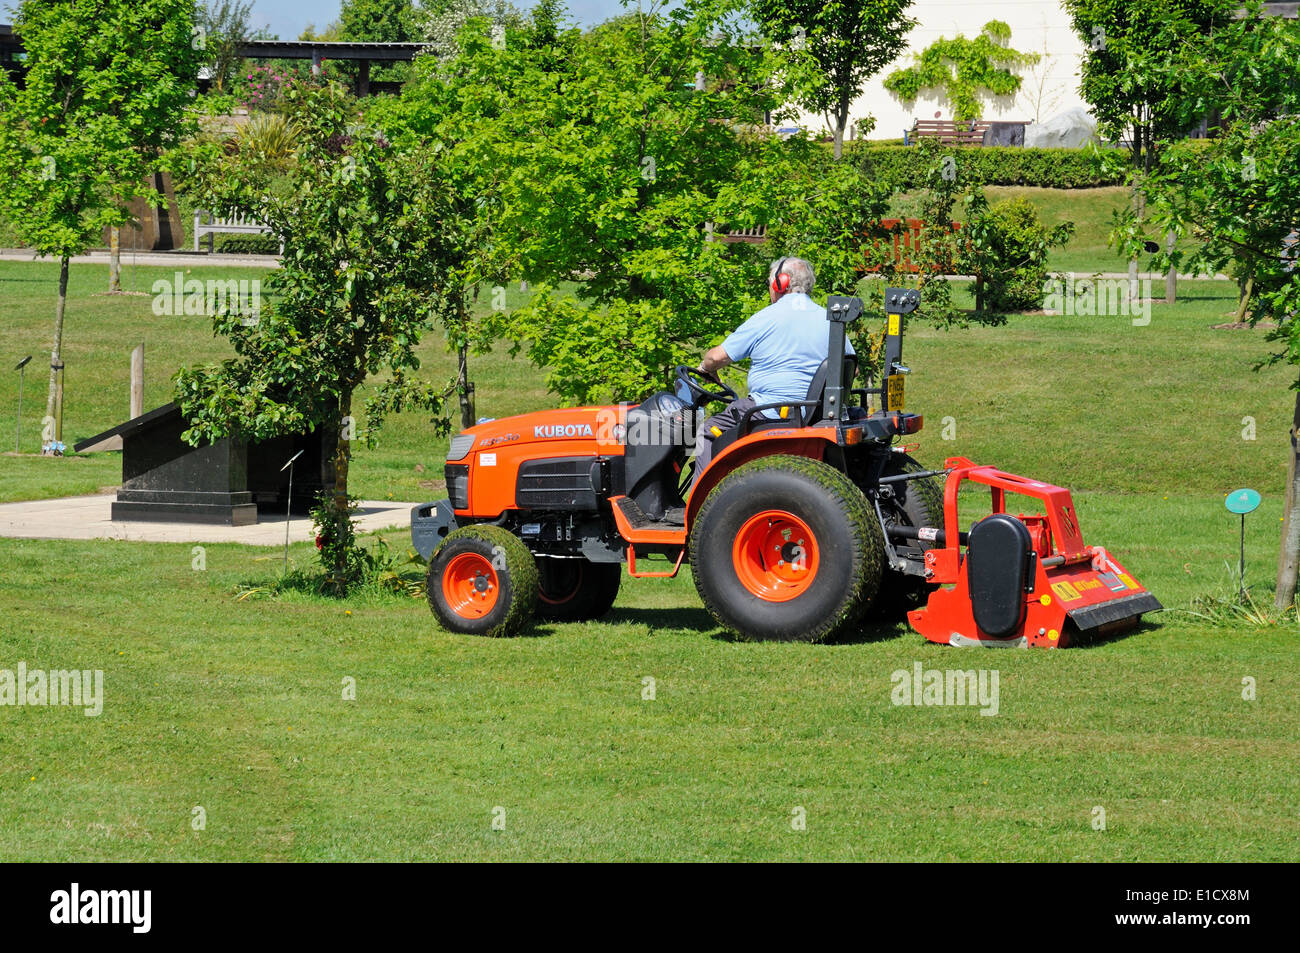 Gardener on a ride on mower mowing the lawns at the National Memorial Arboretum, Alrewas,  UK. - Stock Image